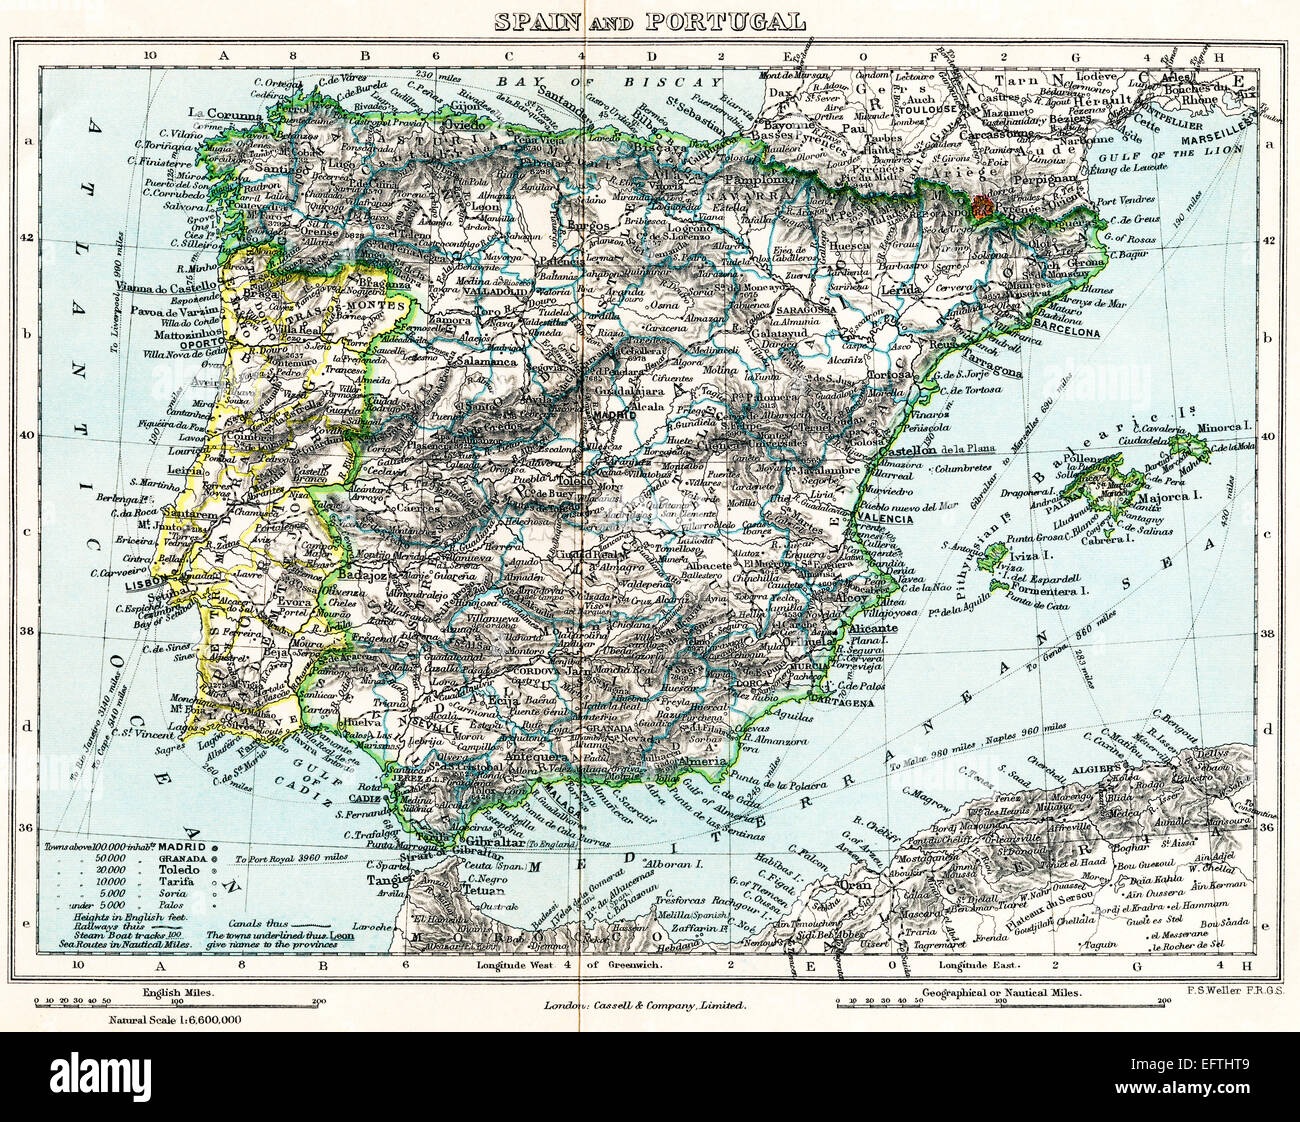 Spain Map Stock Photos & Spain Map Stock Images - Alamy on driving road map spain, driving map of southwest united states, driving road map pena portugal, road map of portugal, road map spain portugal, driving map of france, driving distances europe map, large map of portugal,